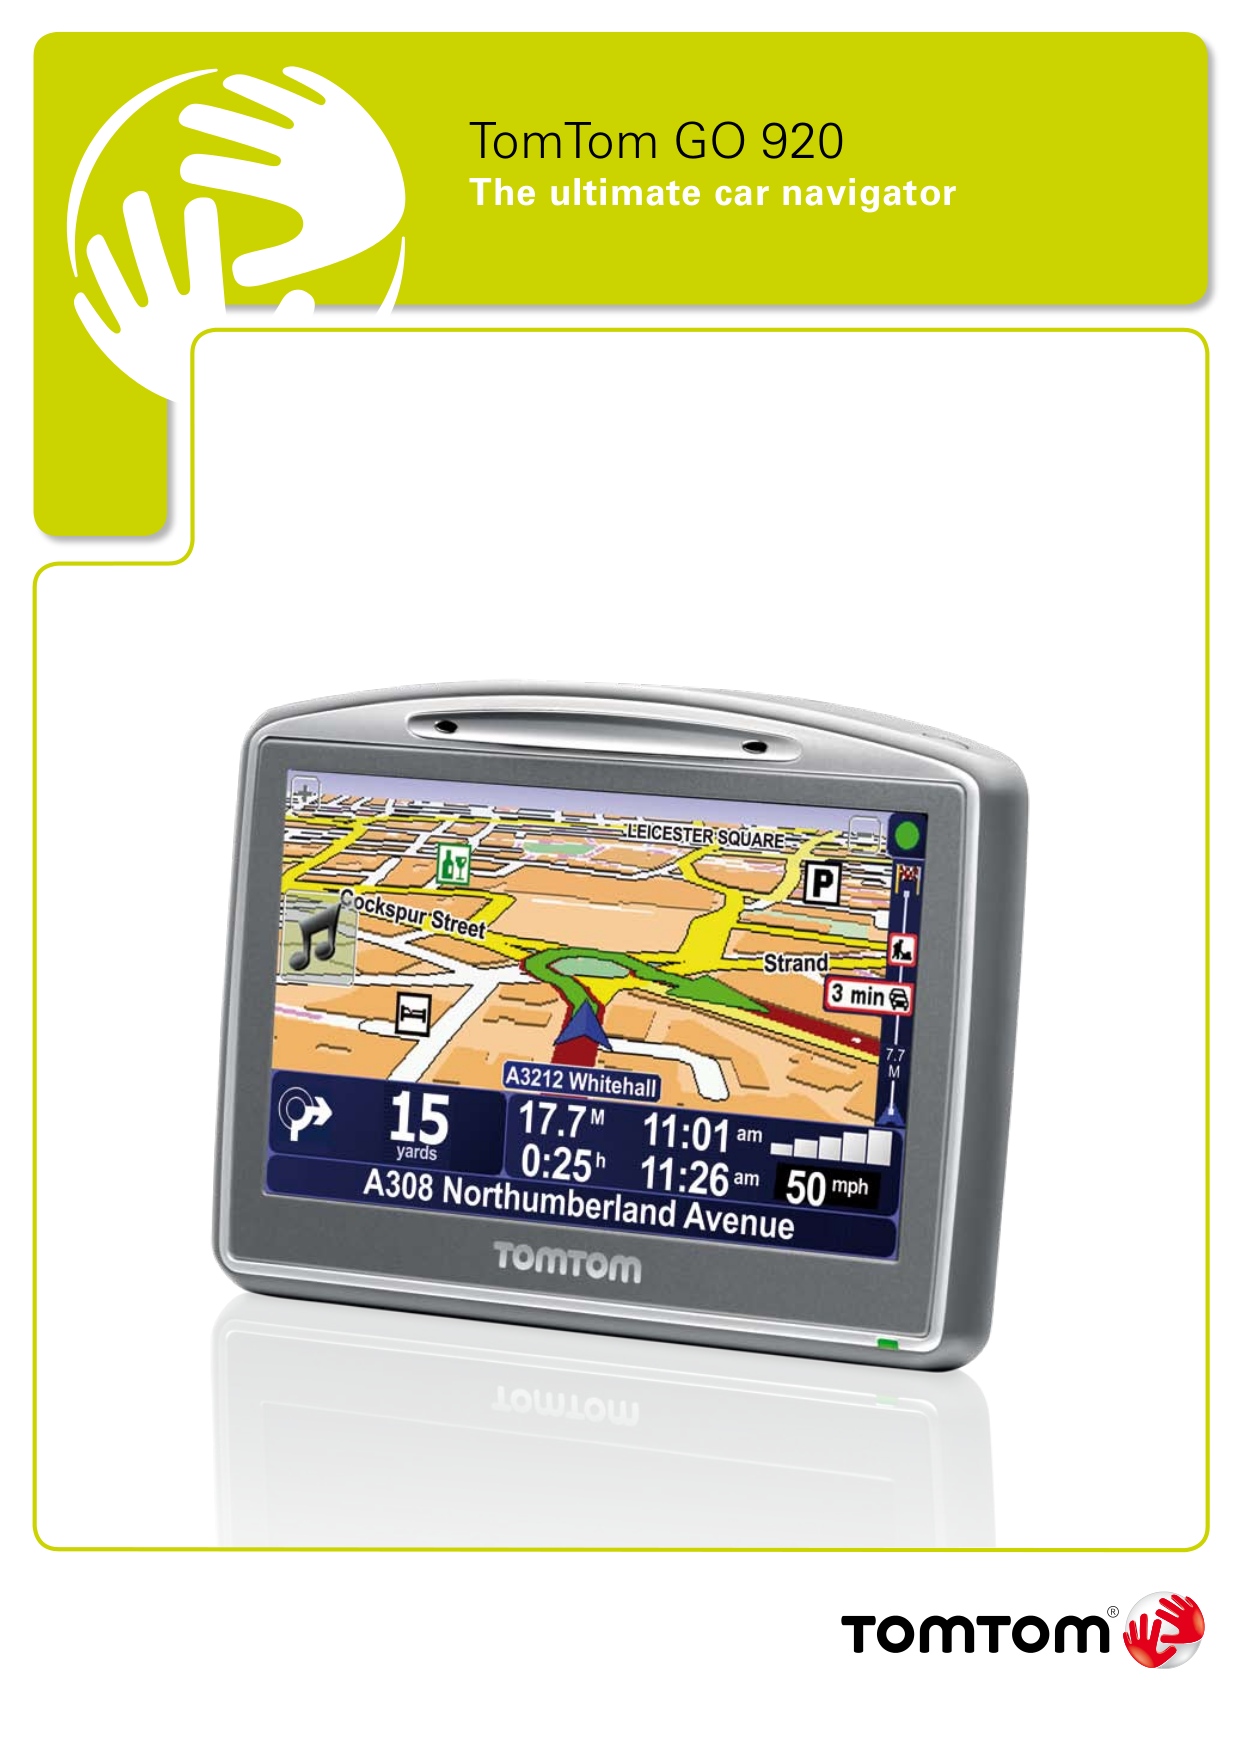 Tomtom one xl manual download pdf for tomtom gps go 920 manual fandeluxe Image collections